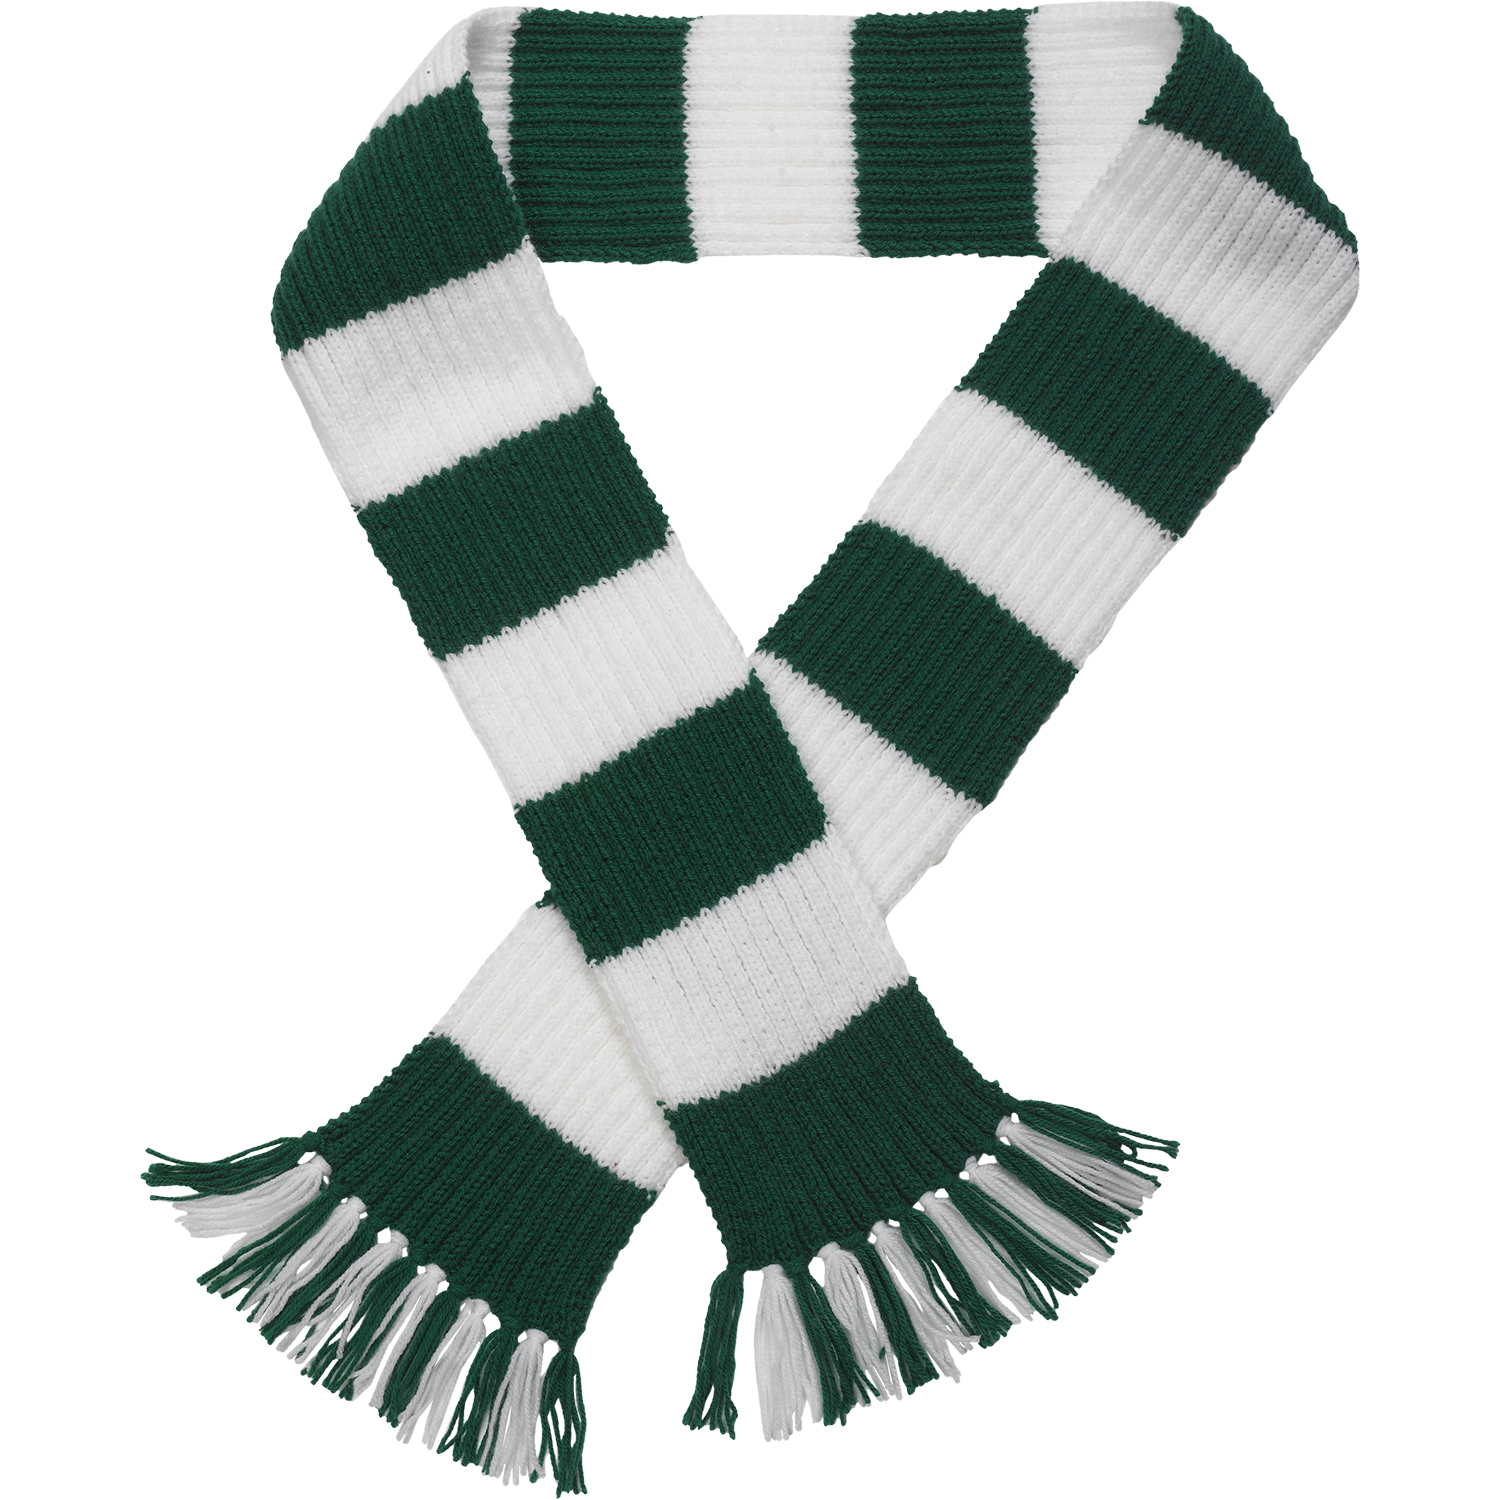 Knitting Pattern Wool Kits : Craft Hobby Knitted Scarf Kit Football & Rugby DK Double Knitting Pattern...